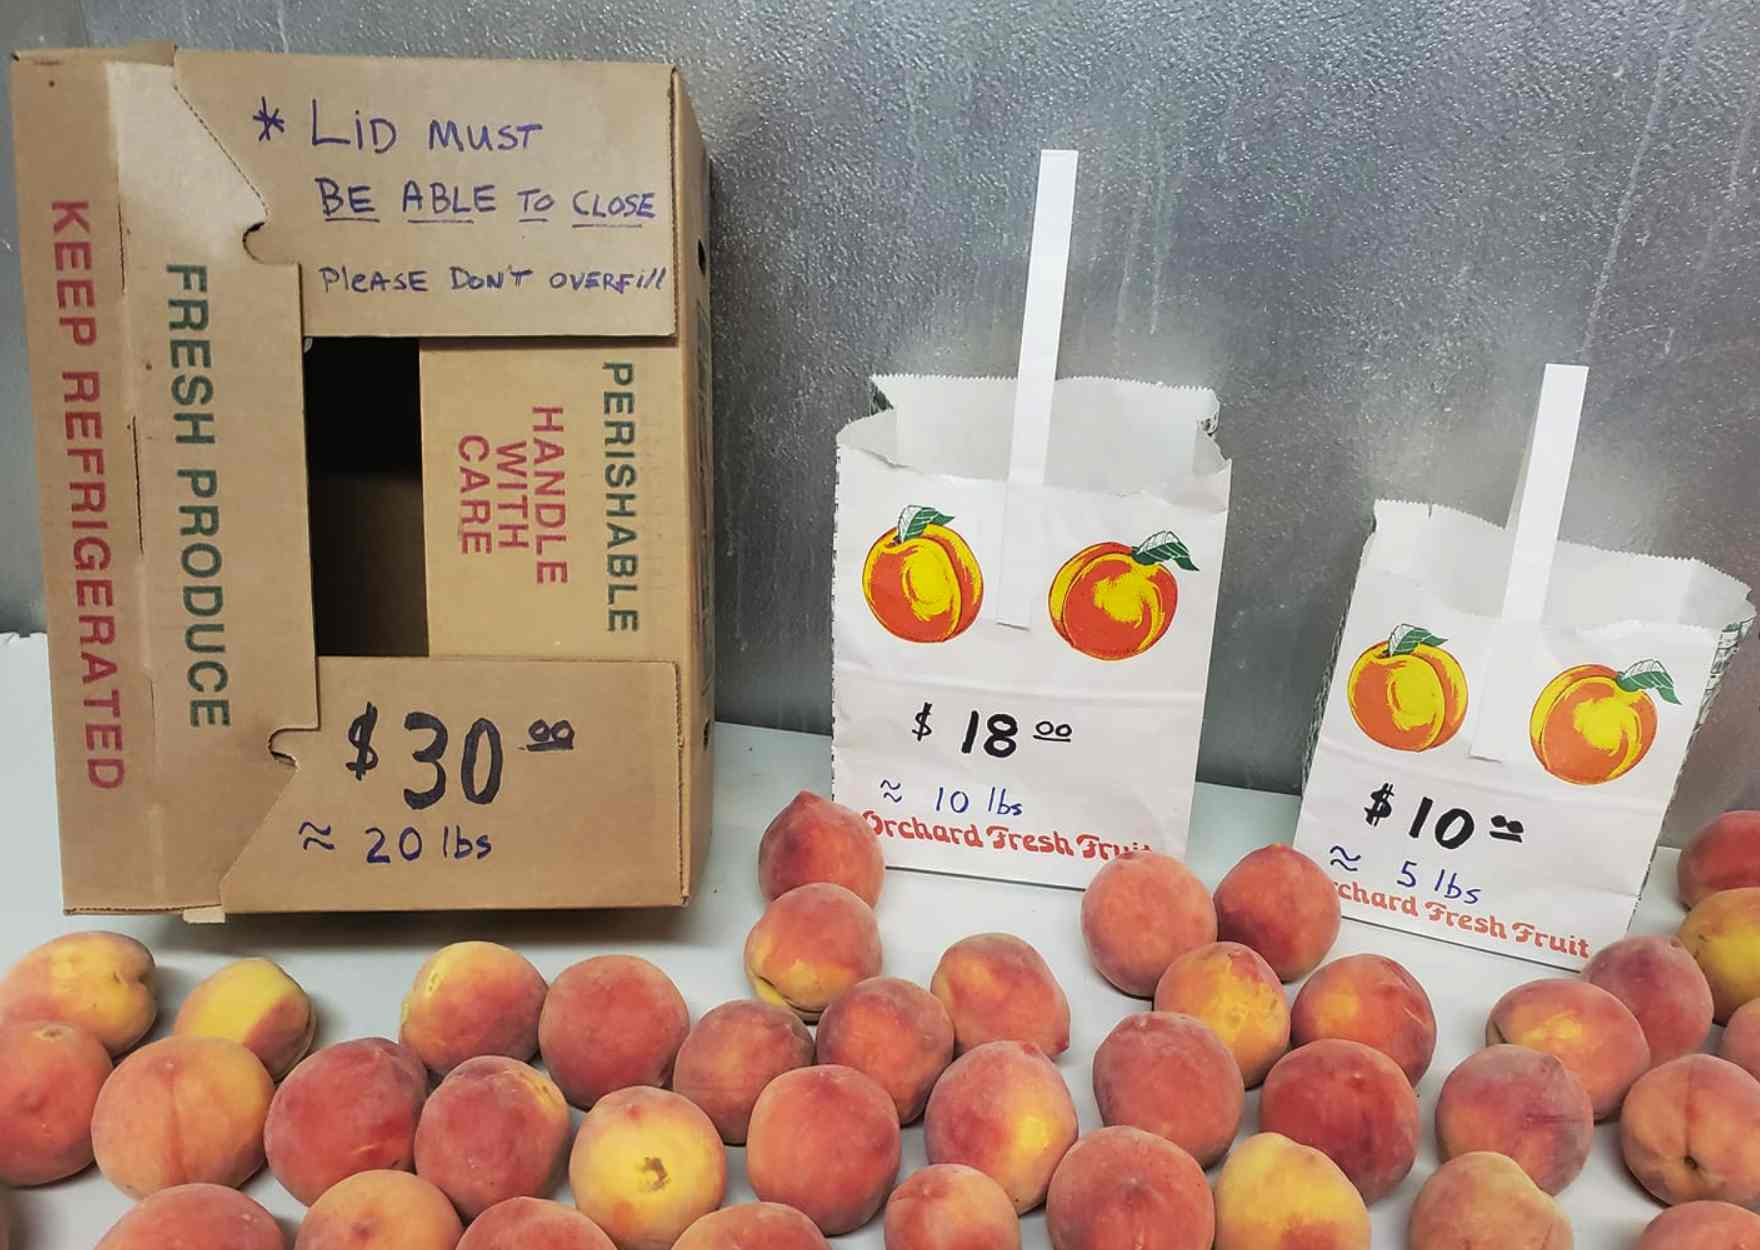 2019 pricing for peaches from Valhalla Orchards